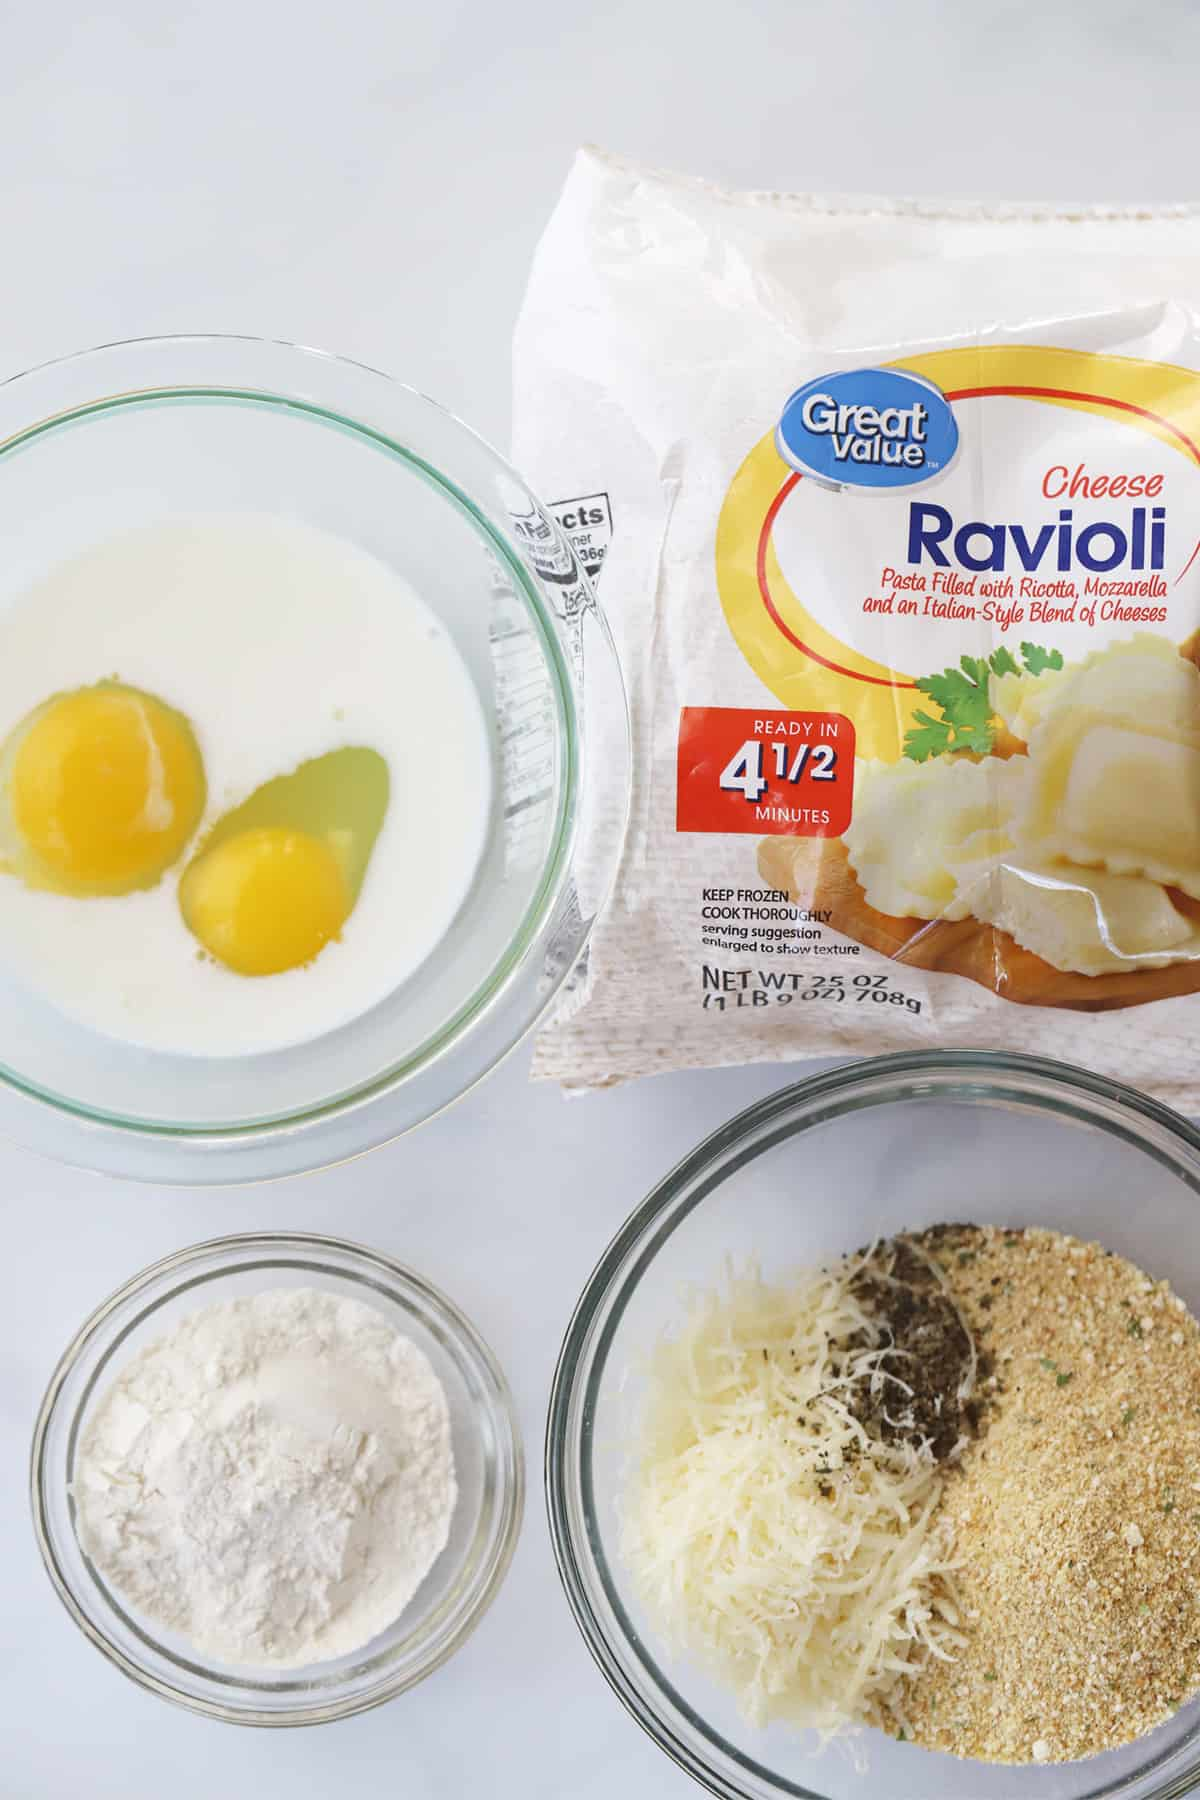 Three glass bowls filled with eggs and milk, flour, cheese, breadcrumbs, seasoning and a bag of raviolis.